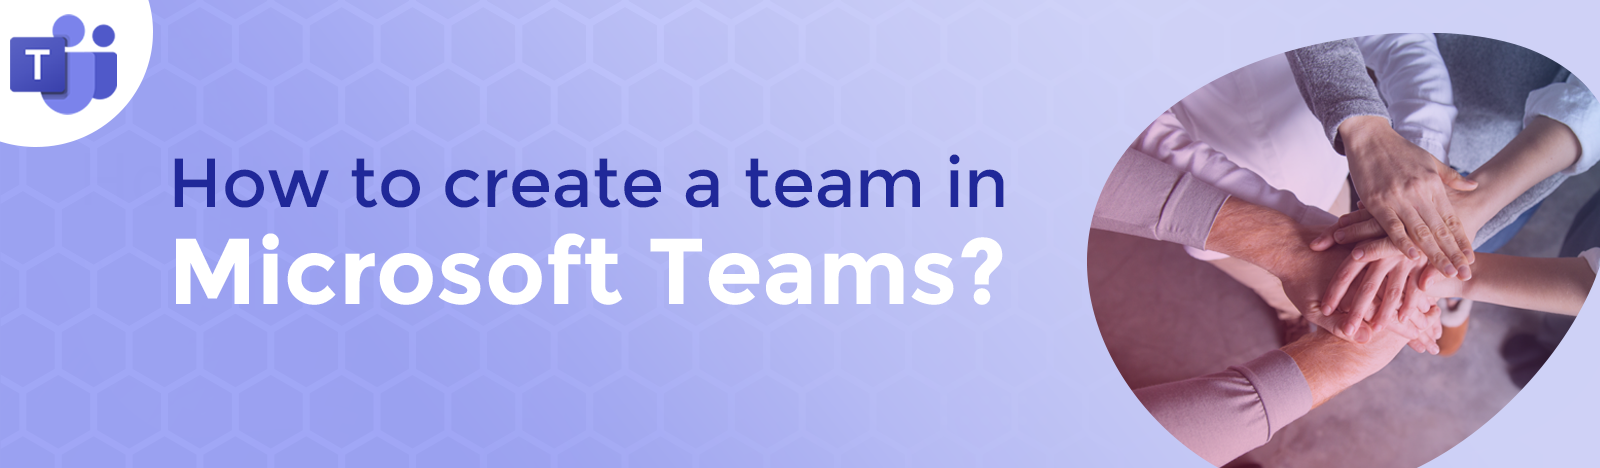 How to create a Team in Microsoft Teams?